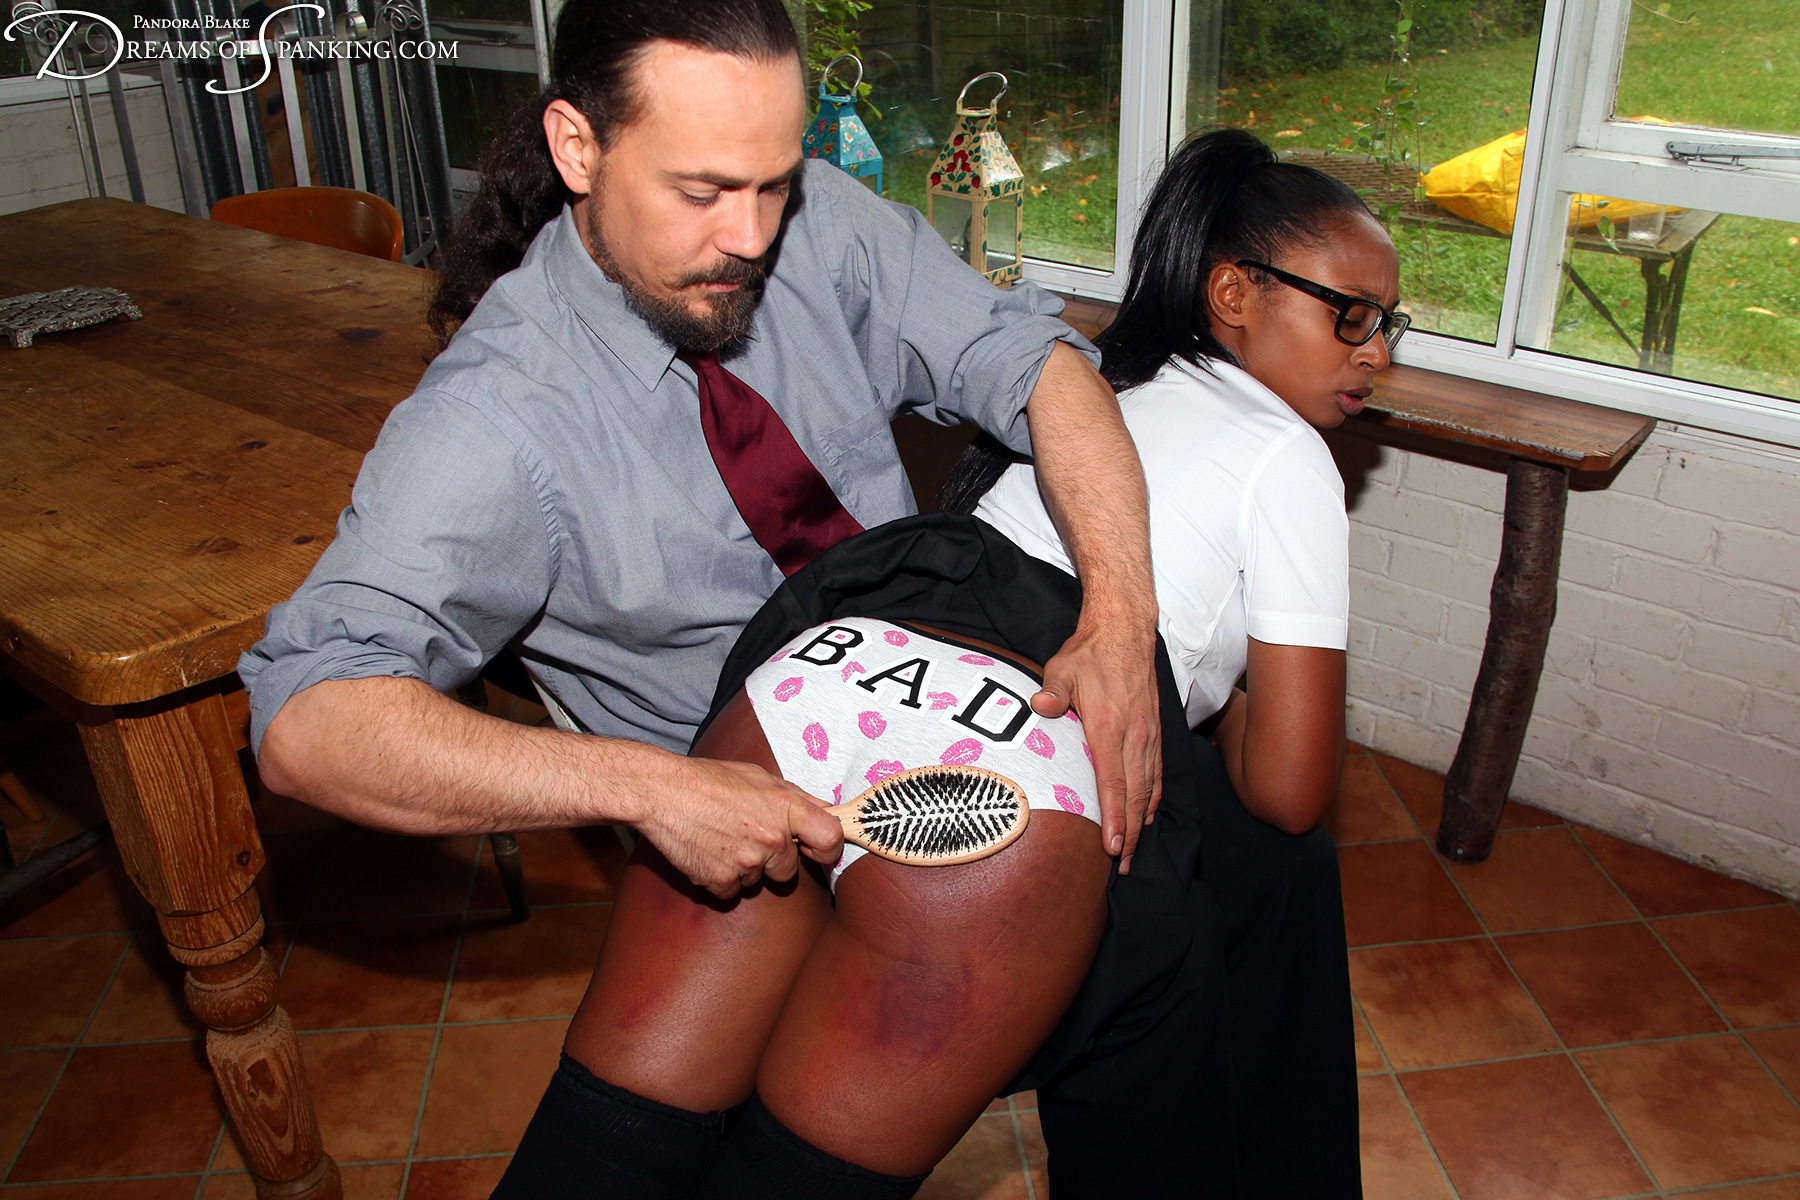 Schoolgirl Lola Marie spanked with a hairbrush at Dreams of Spanking